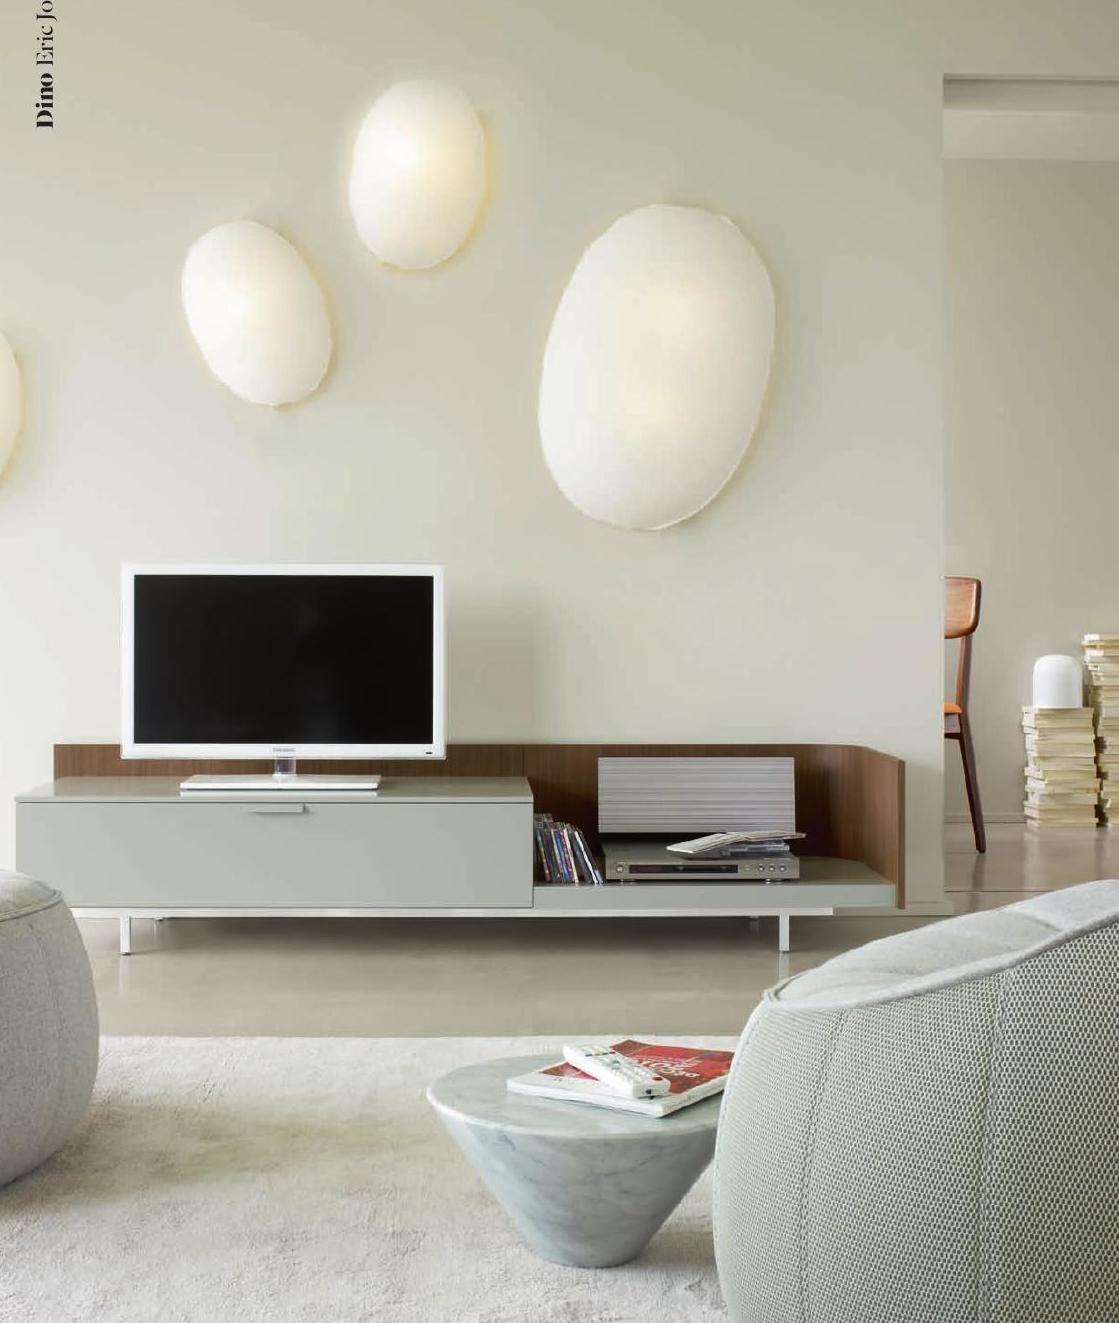 Ligne Roset 2014 With Images Home Decor Furniture Contemporary Family Rooms Minimalism Interior